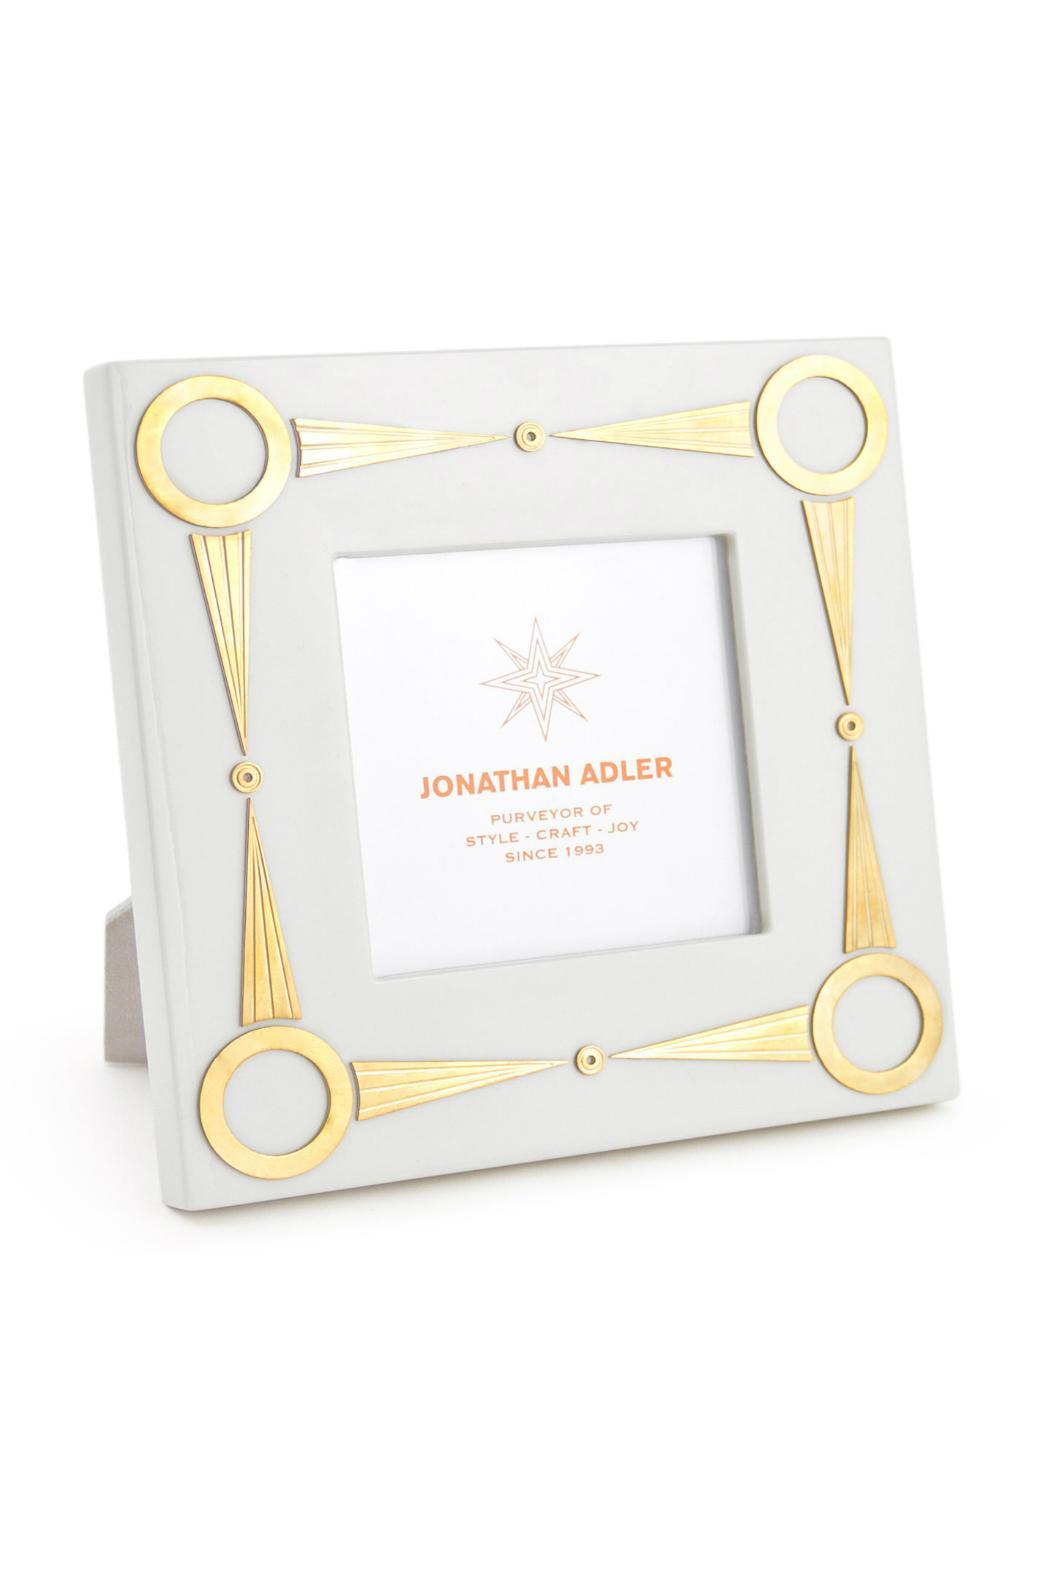 Jonathan Adler Turner Frame from Wyckoff by Eurica Home — Shoptiques